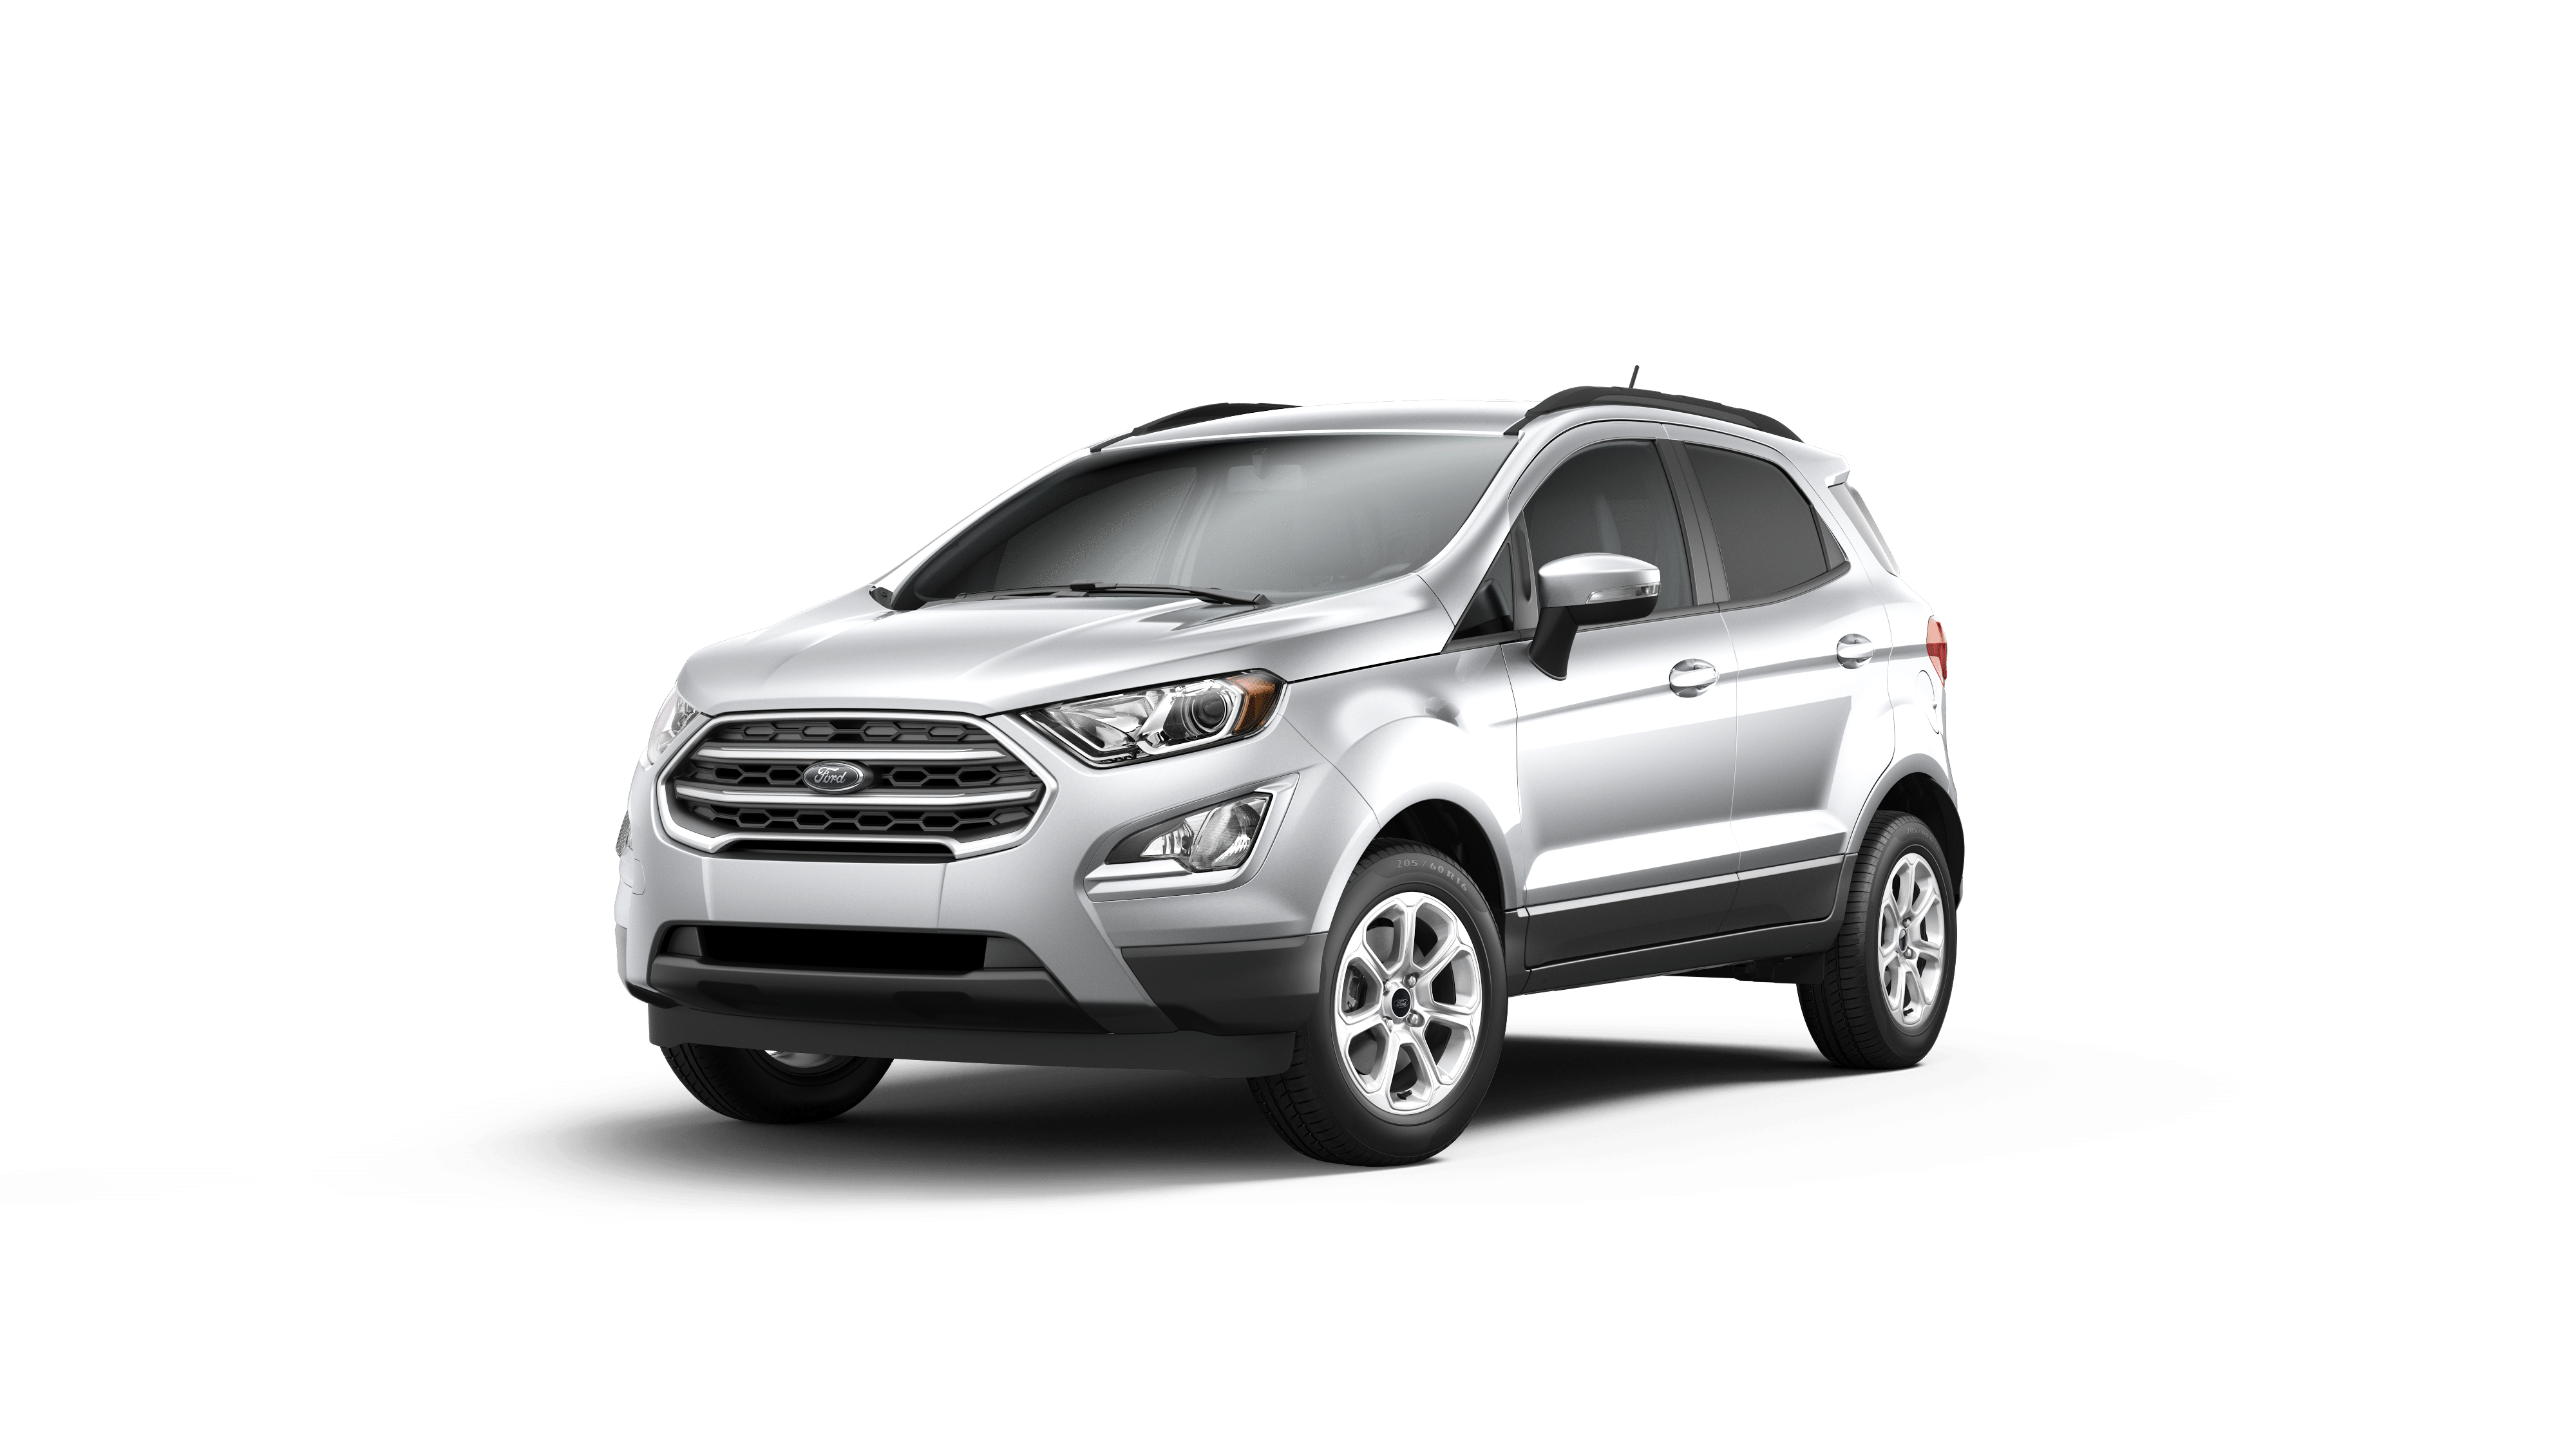 henrietta supercenter acadia gmc specials a certified lease car is buick weeklyads patrick used